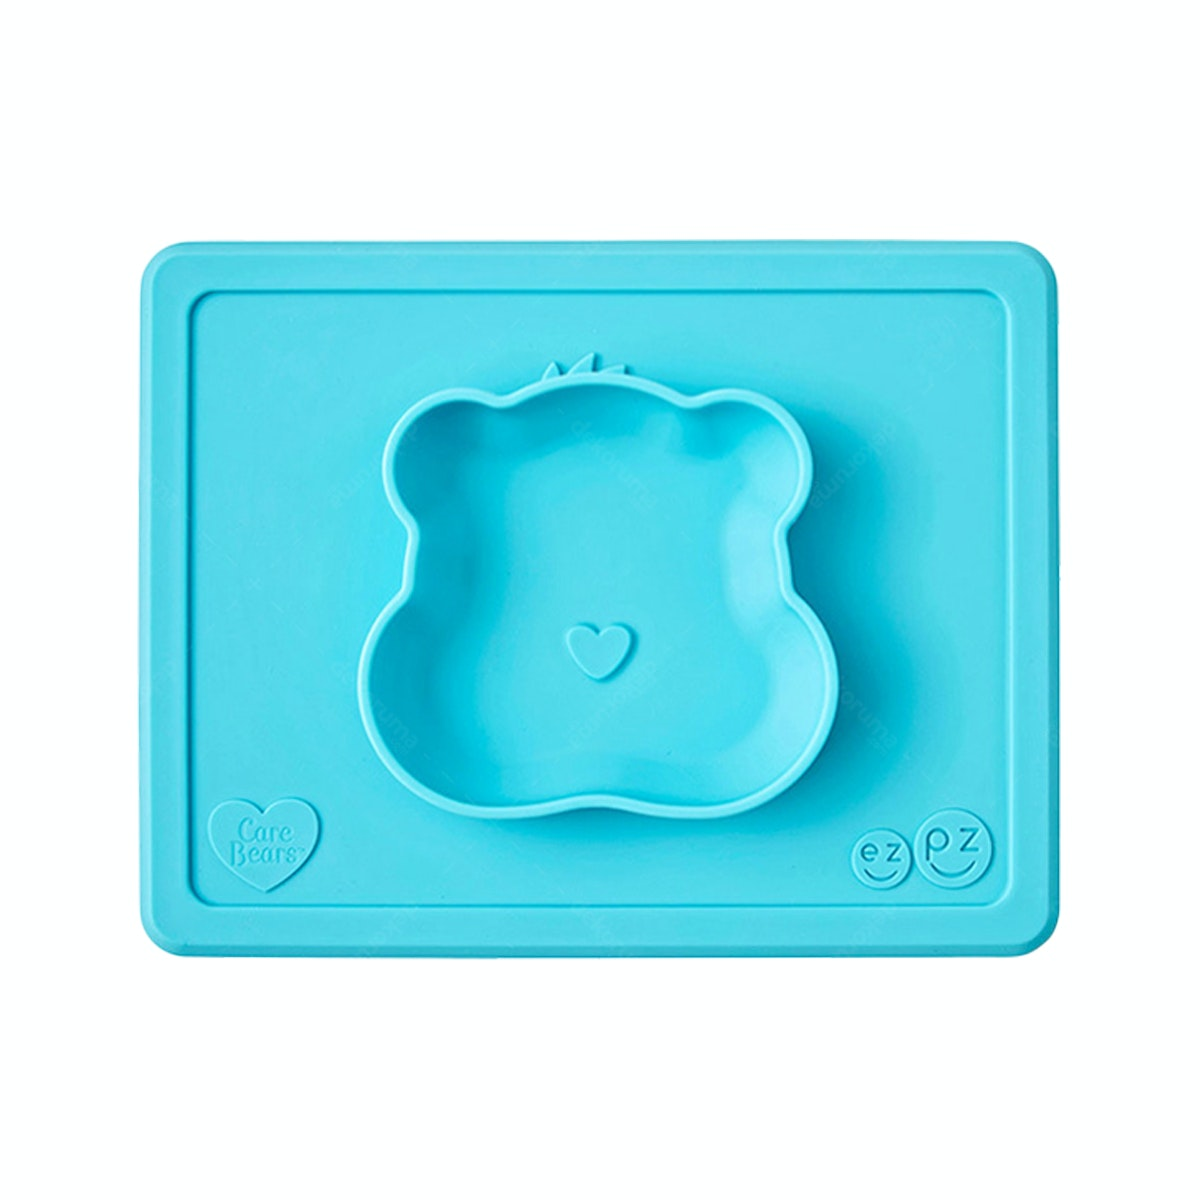 Ezpz Care Bear Bowl in Wish Teal